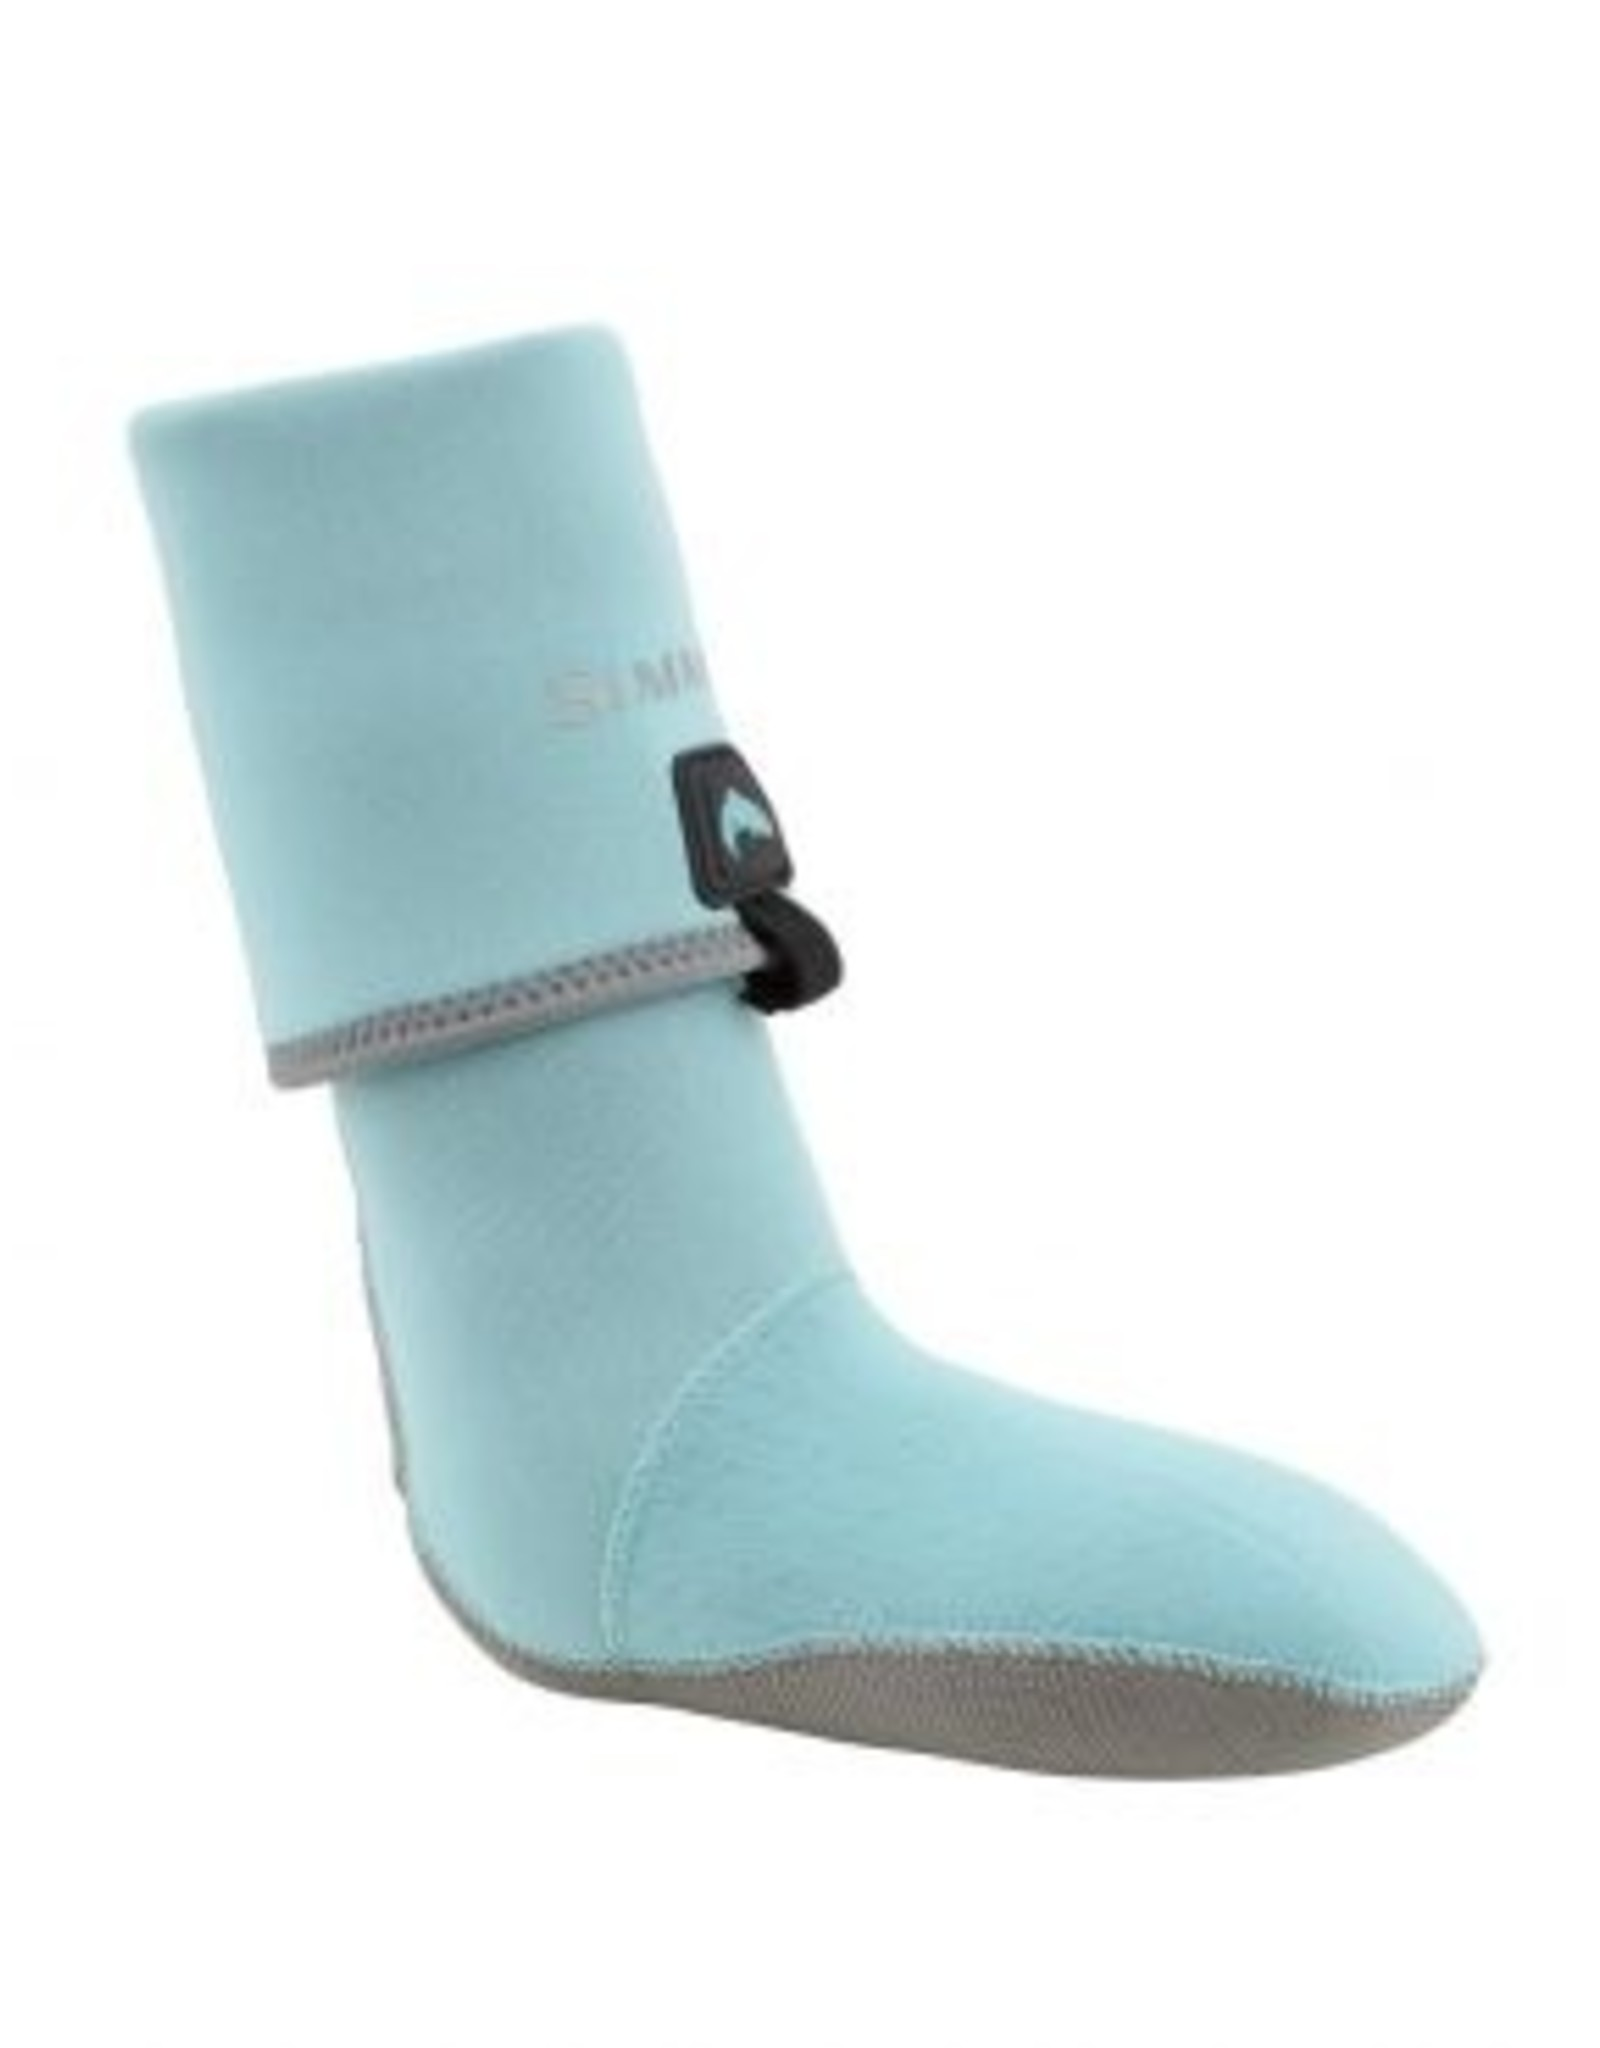 Simms W' Guide Guard Socks